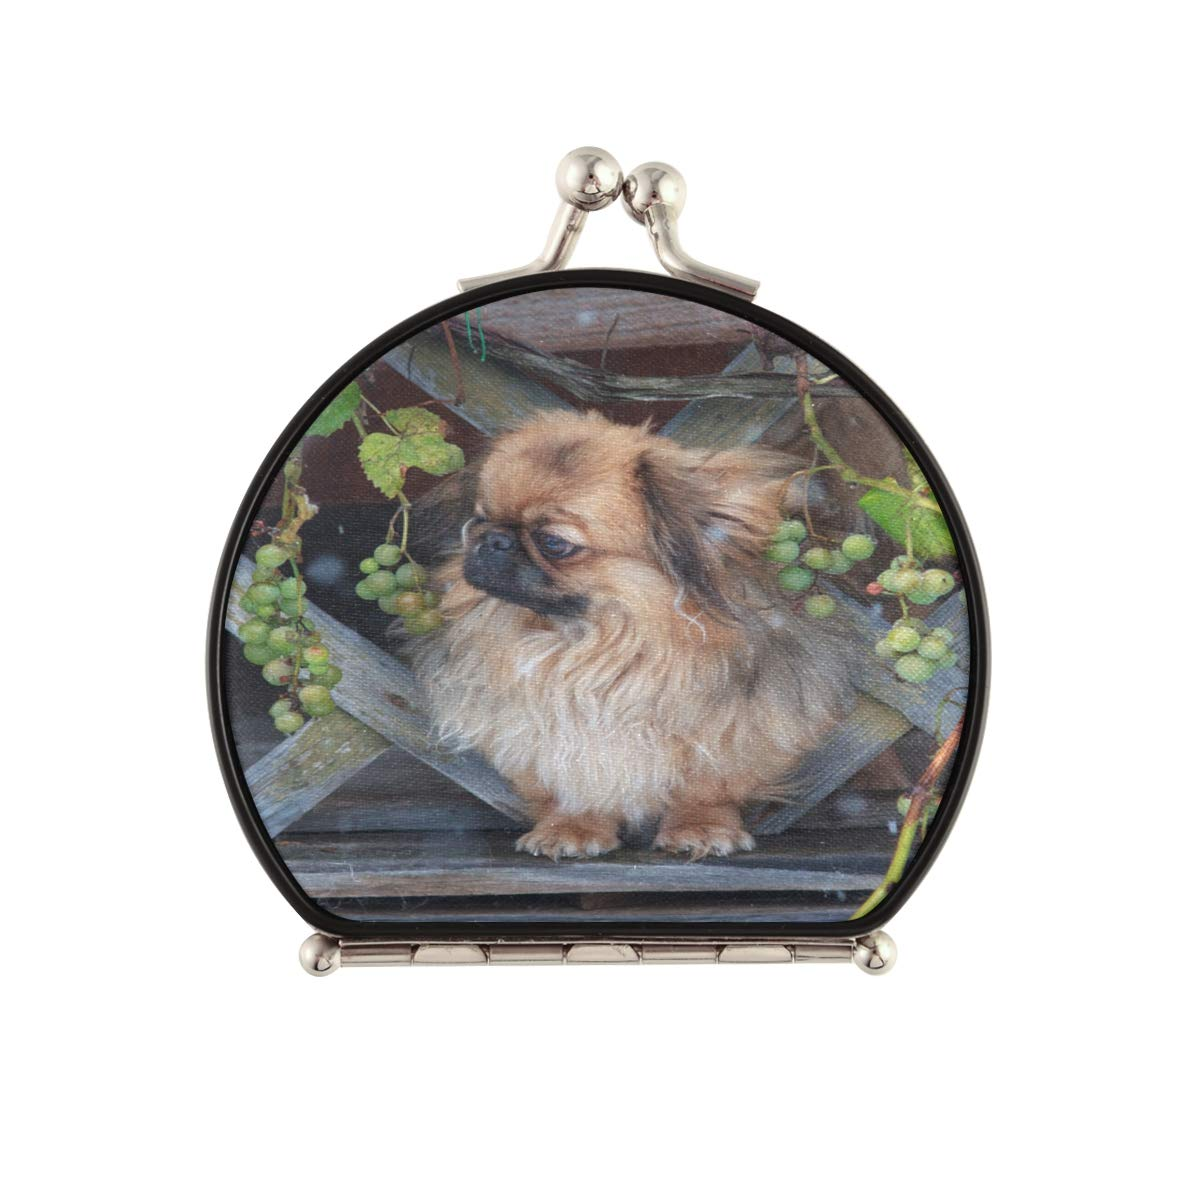 Magnifying Sale special price Compact Cosmetic Mirror Watching Sad First Pekingese Discount is also underway